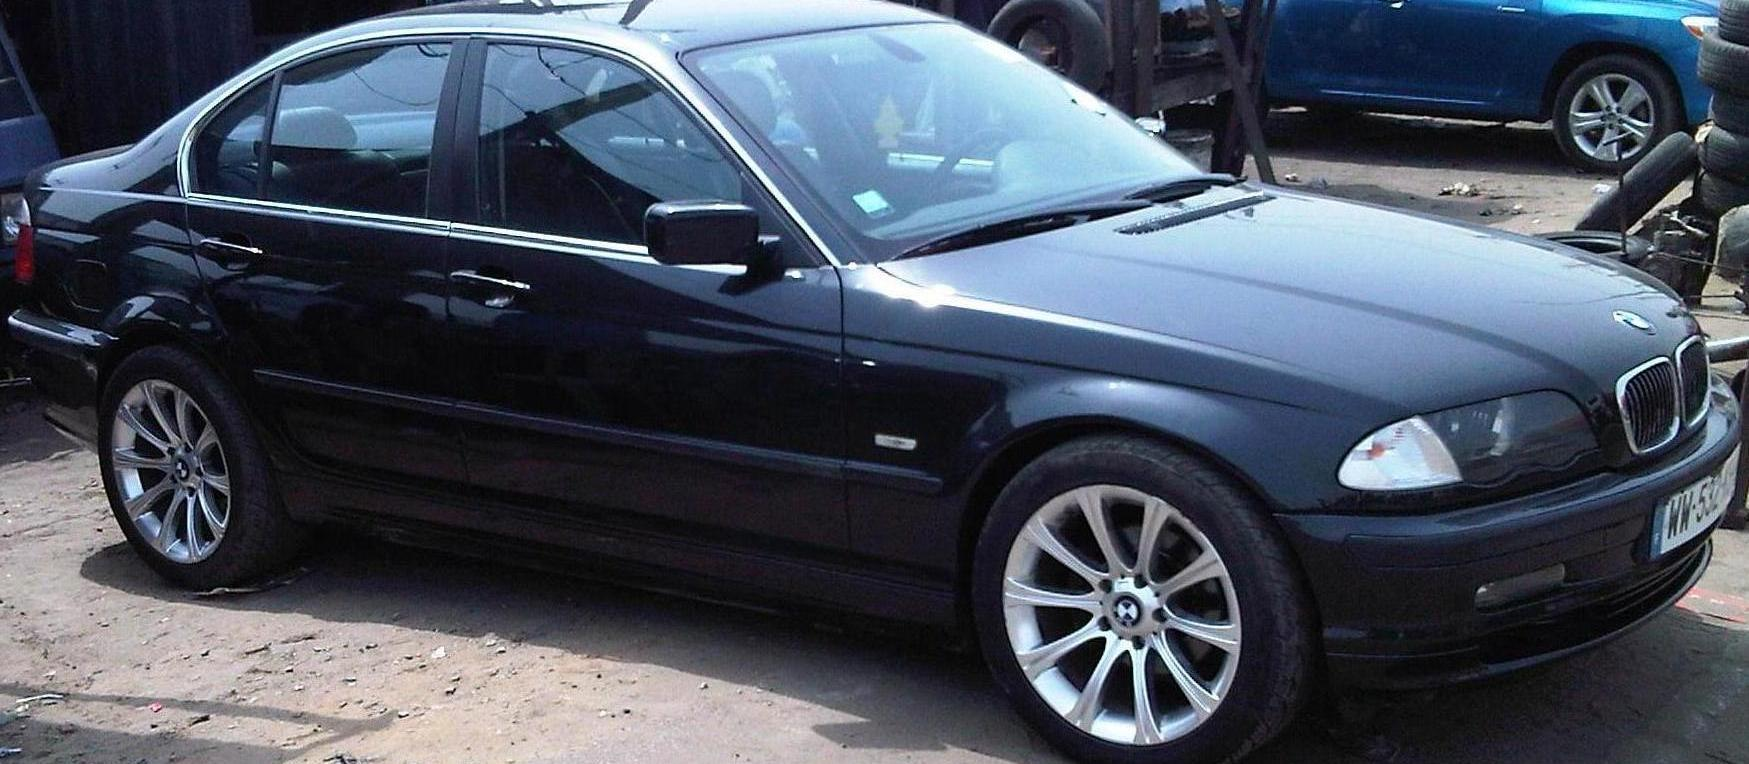 hight resolution of year 2000 model leather interior black colour unbeatable offer location berger auto market lagos whatsapp or call chibuzo 08096577304 cibebuike gmail com